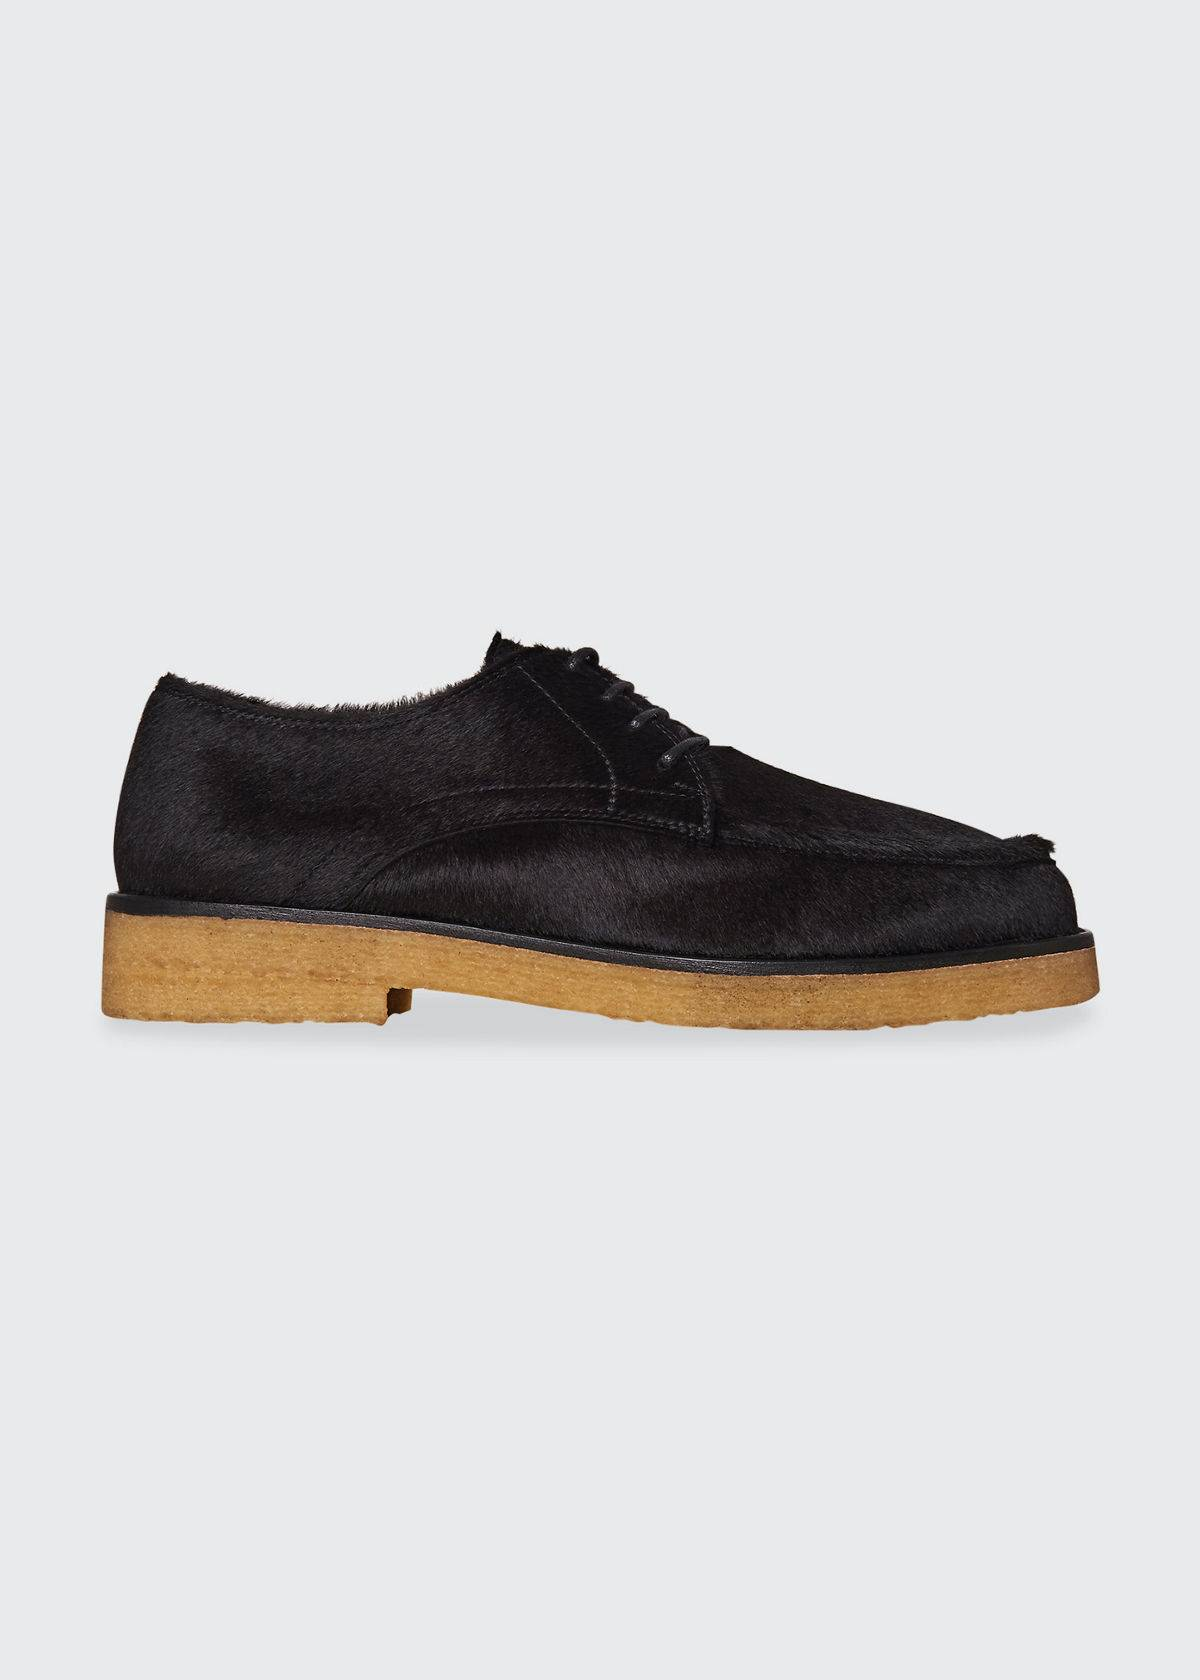 THE ROW Honore Derby Shoes in Calf Hide  - female - BLACK - Size: 9B / 39EU